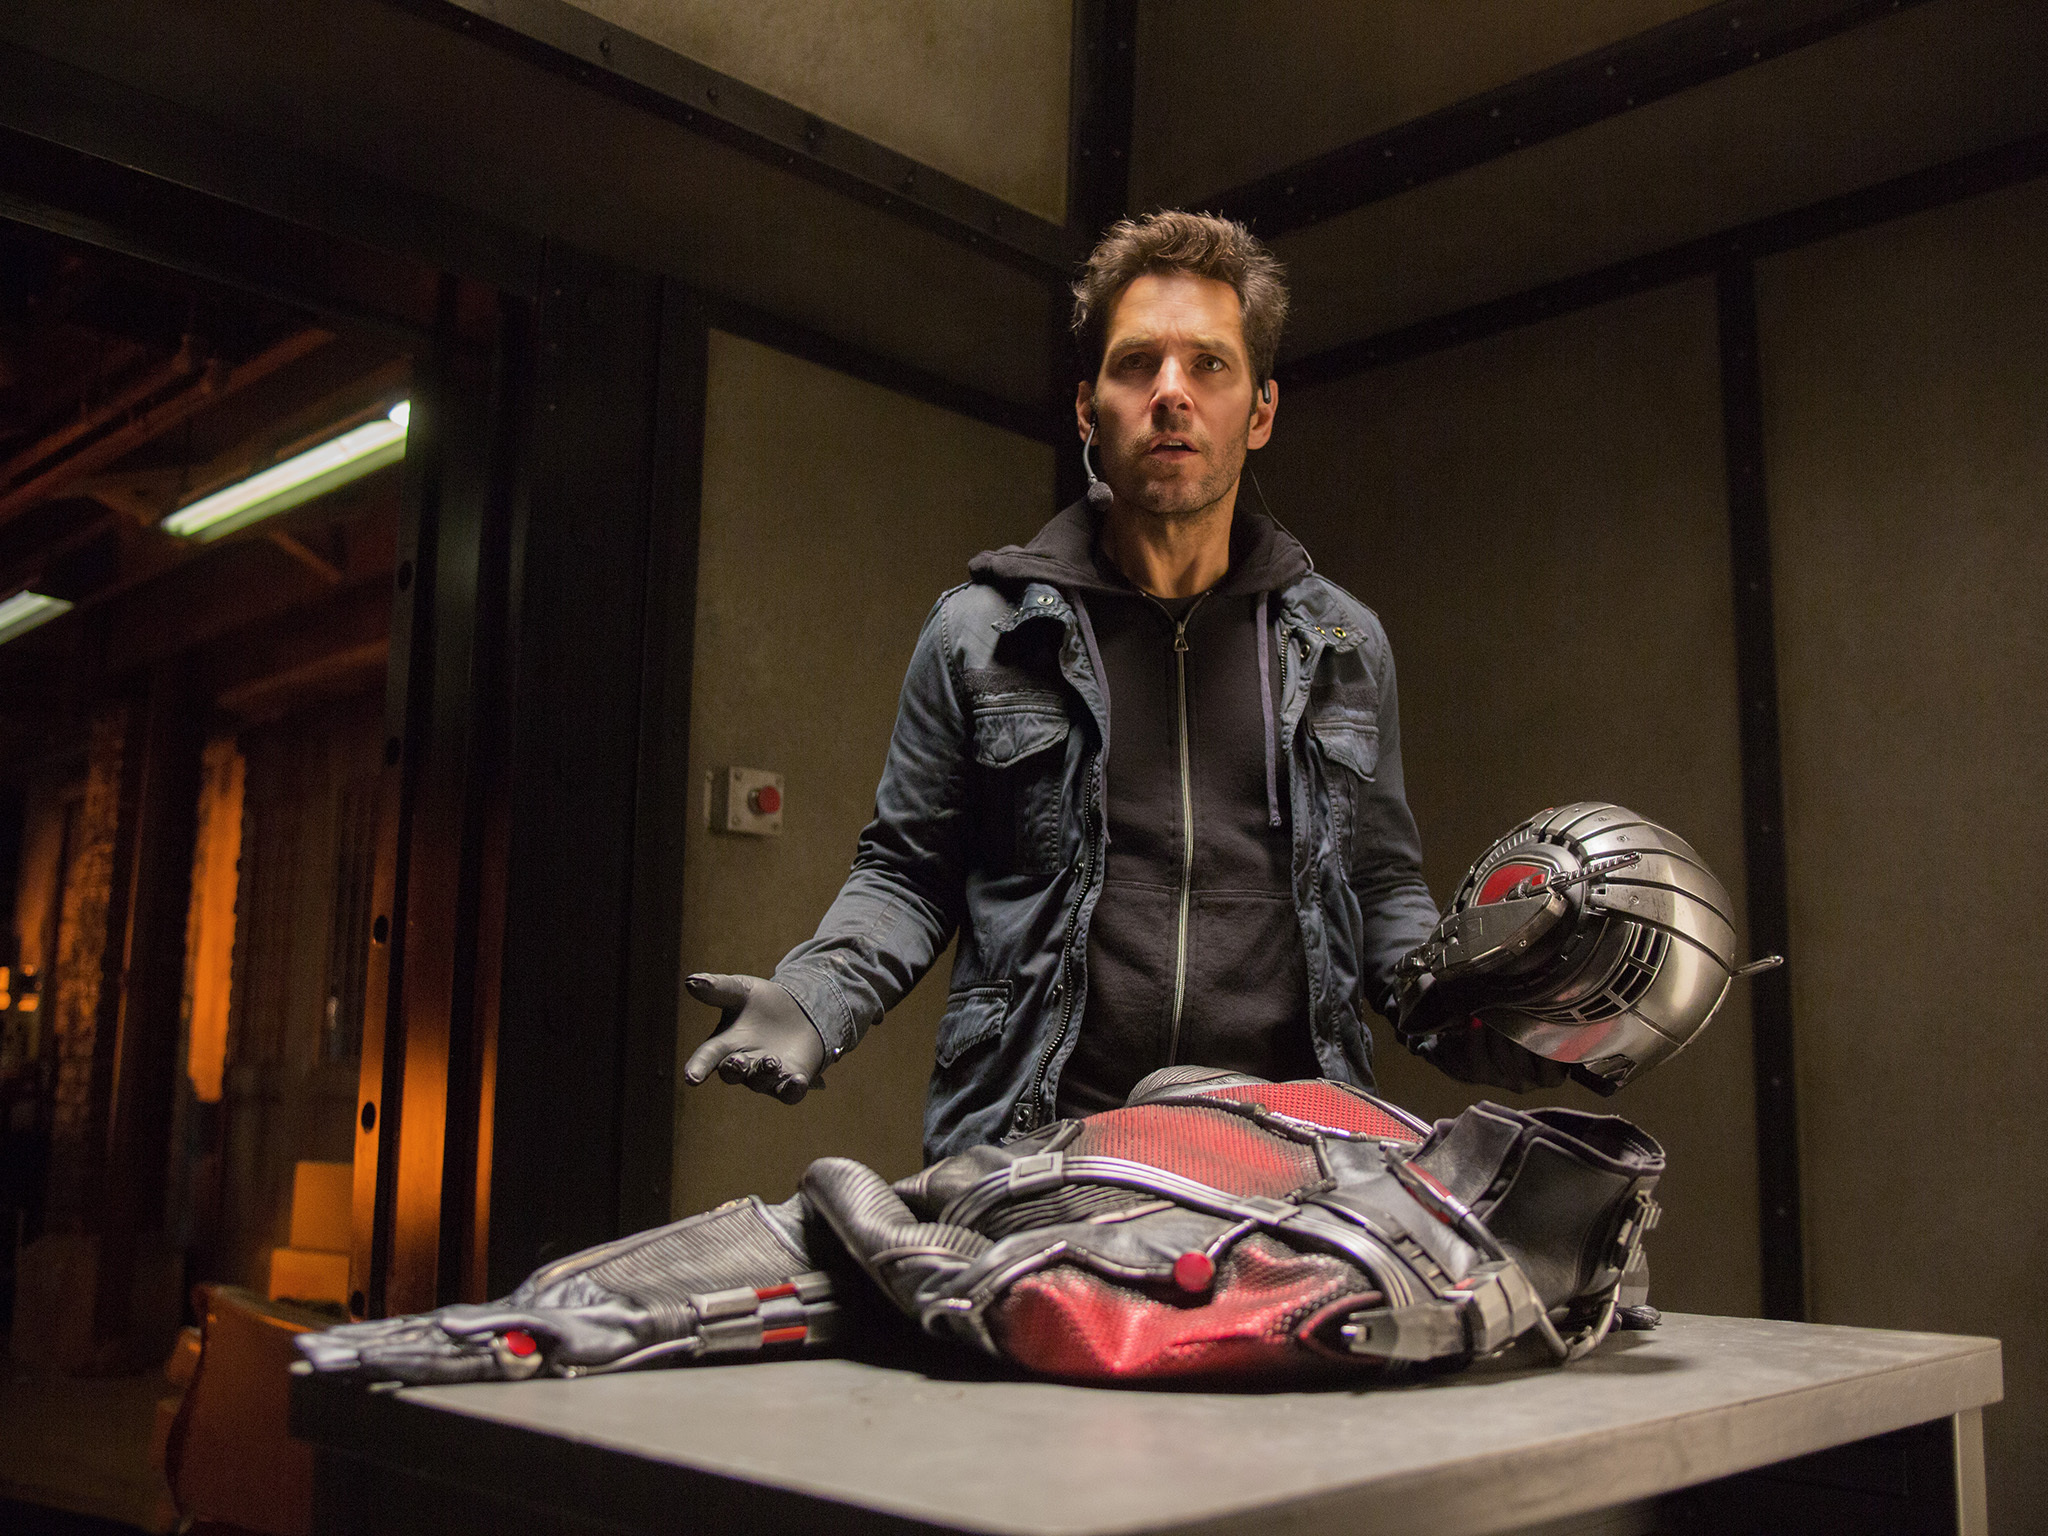 Marvel's Ant-Man starring Paul Rudd